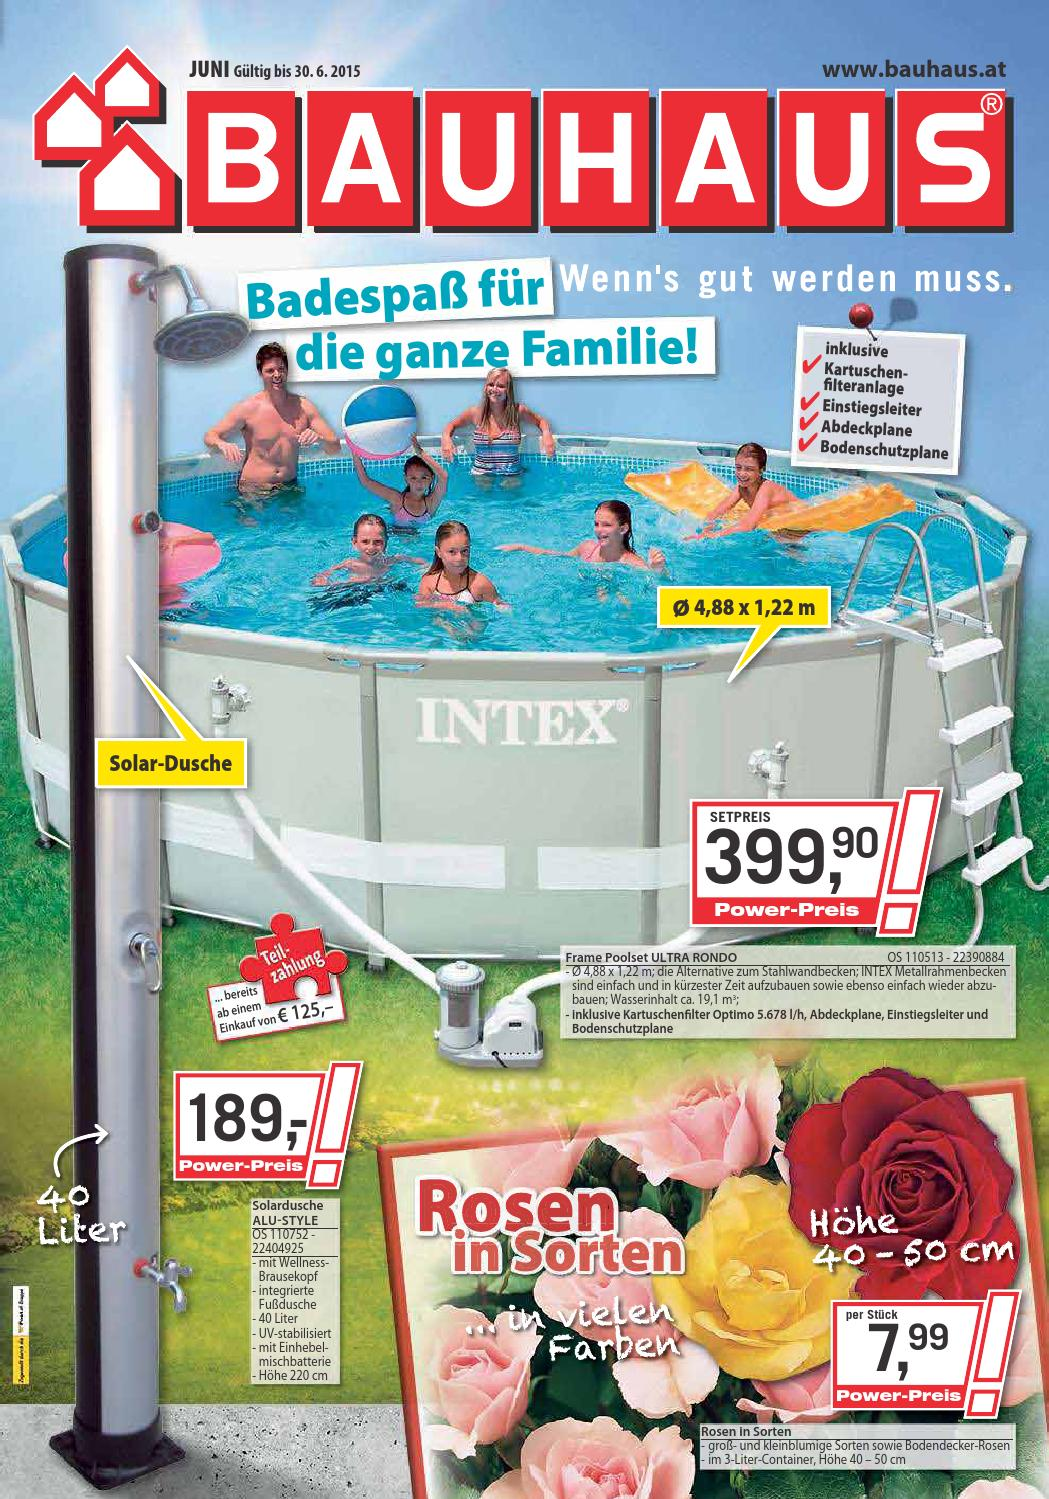 Pool Filterpumpe Bauhaus Bauhaus Angebote 1 30juni2015 By Promoangebote At Issuu